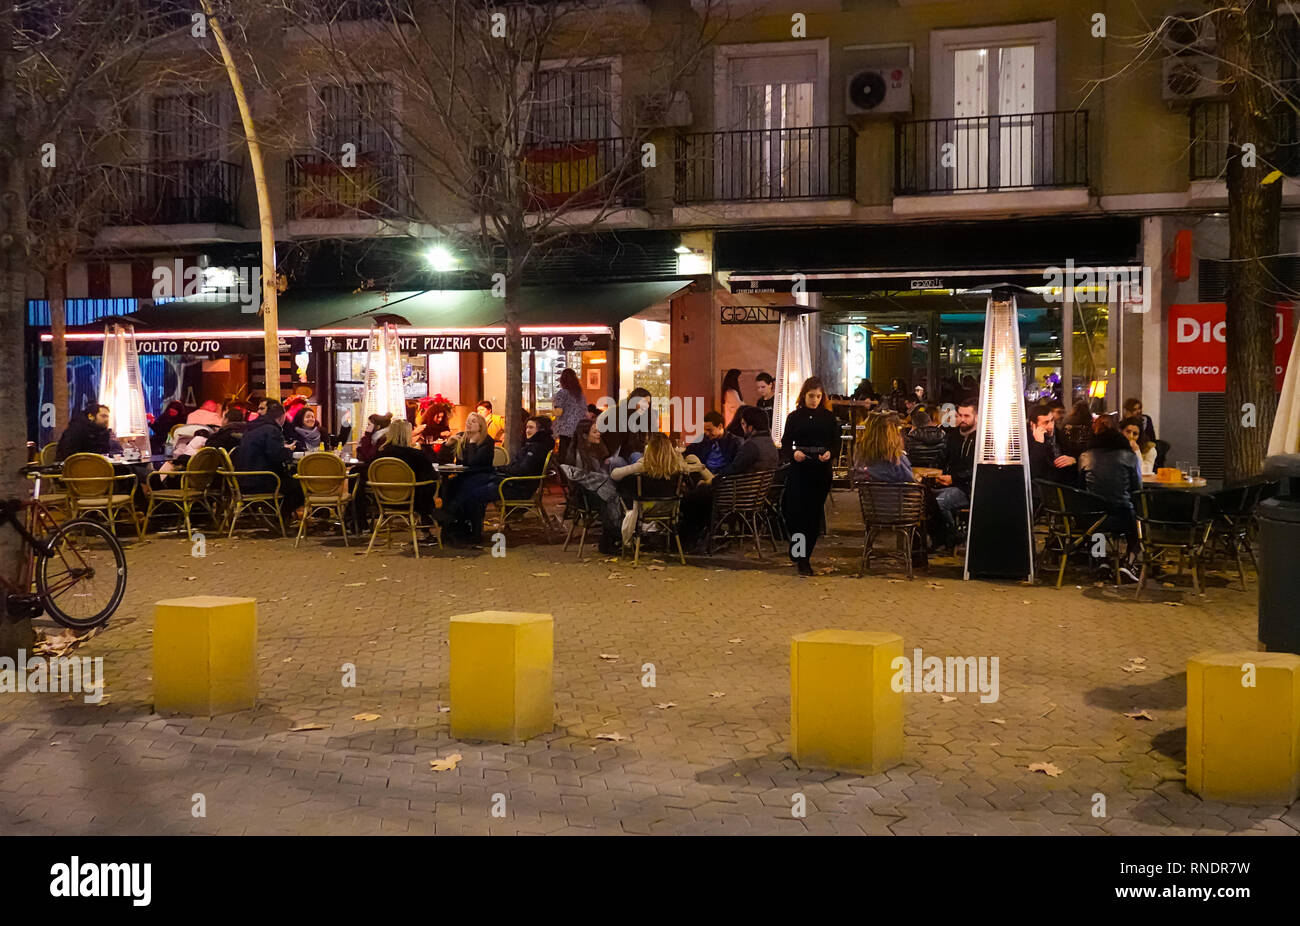 People having food and drinks at an outdoor​ cafe in the Alameda de Hercules in Seville, Spain - Stock Image